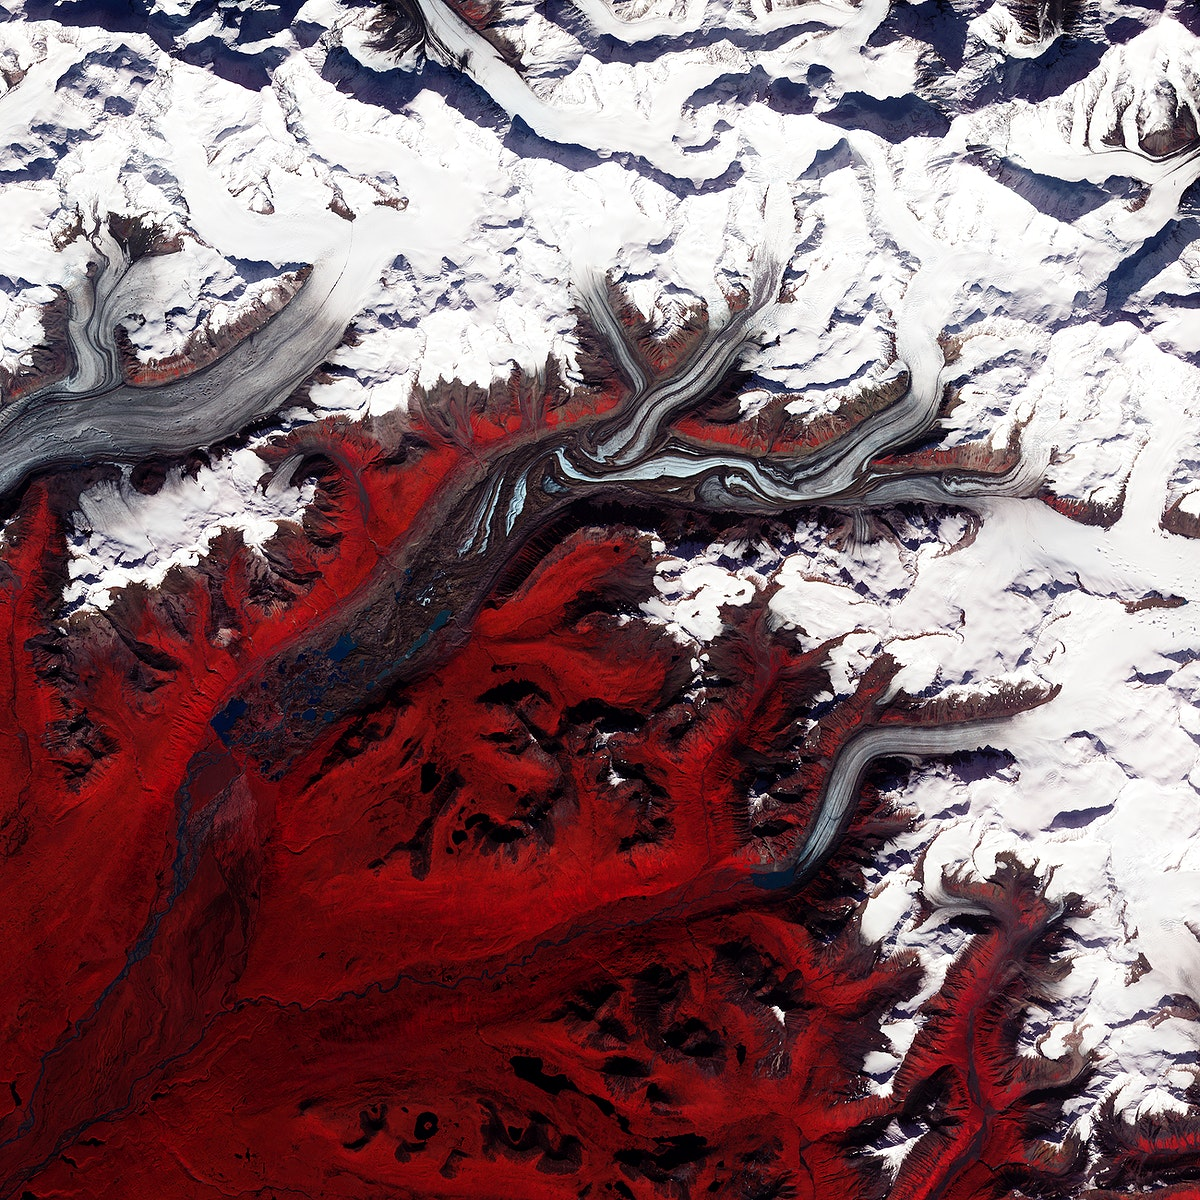 Like rivers of liquid water, glaciers flow downhill, with tributaries joining to form larger rivers. Original from NASA.…